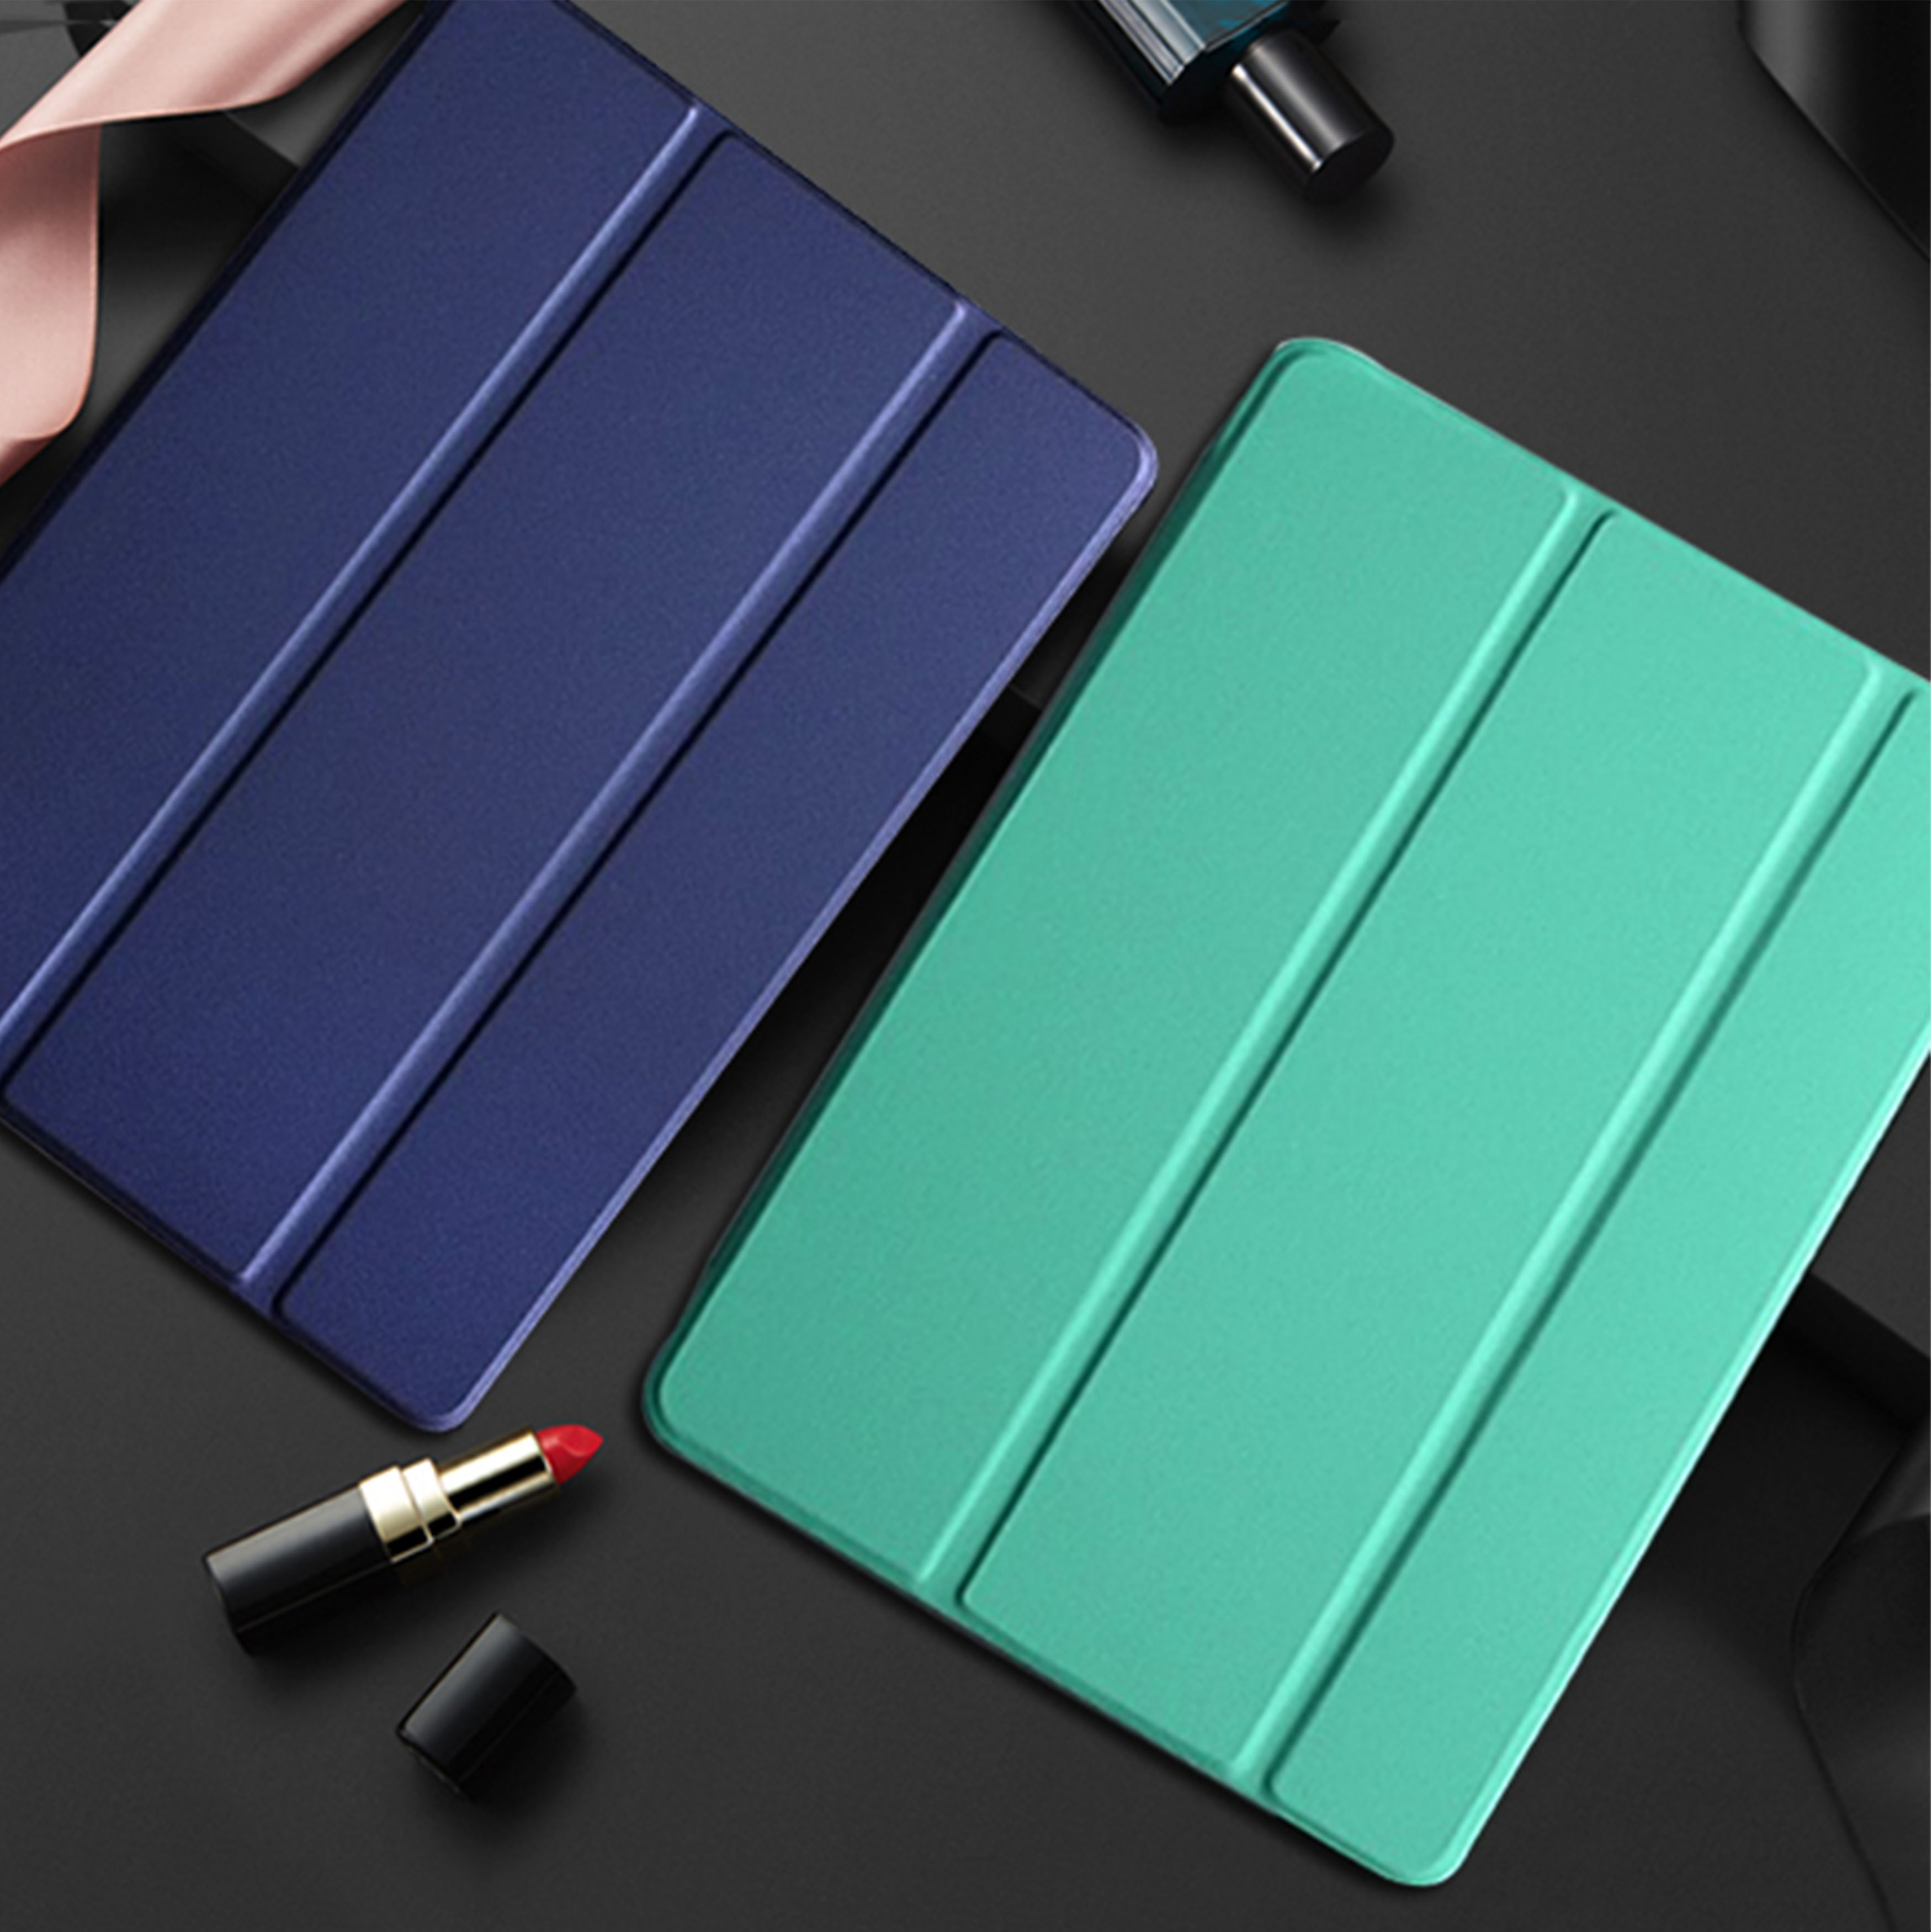 Case For Samsung Tab A 8.0 2019 T290 Cover PU Leather Protect Shell For Samsung Galaxy Tab A 8 Case A8 SM-T290 T295 T297 Coque